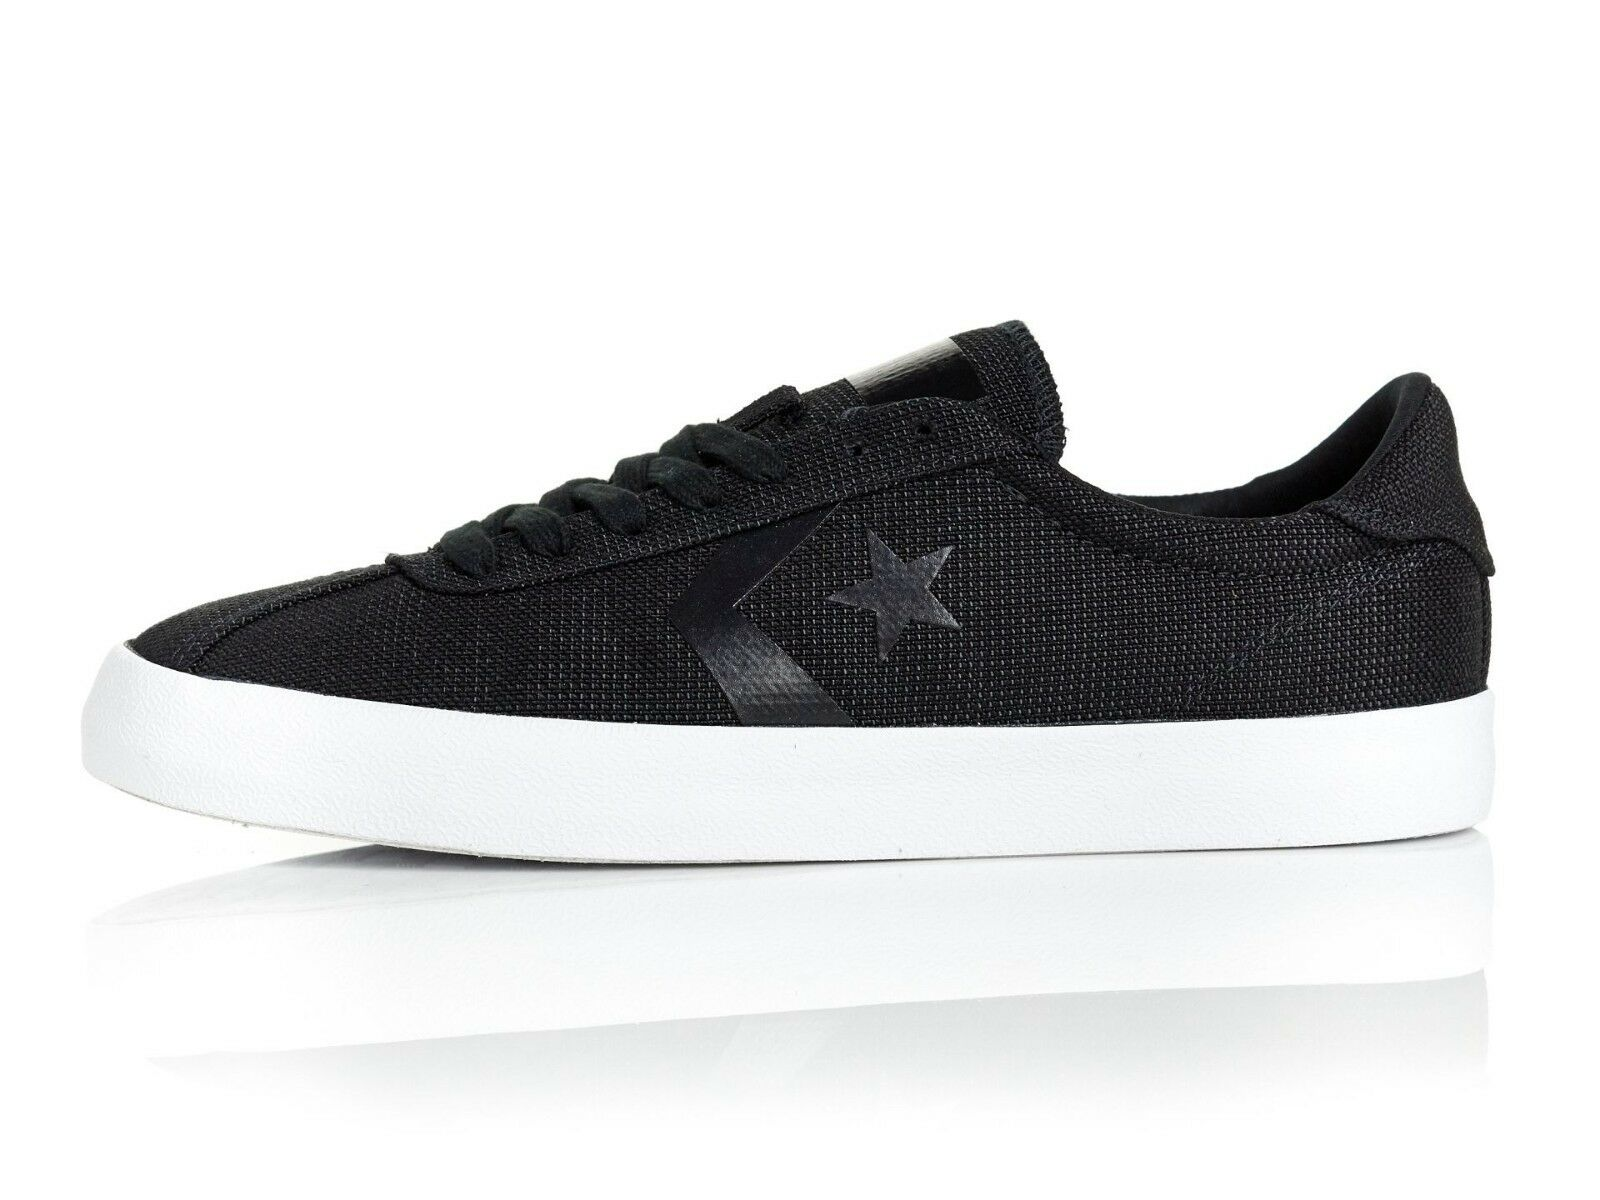 Converse CONS BREAKPOINT LOW OX Shoes Size Size Size 13 155778C 0dd740